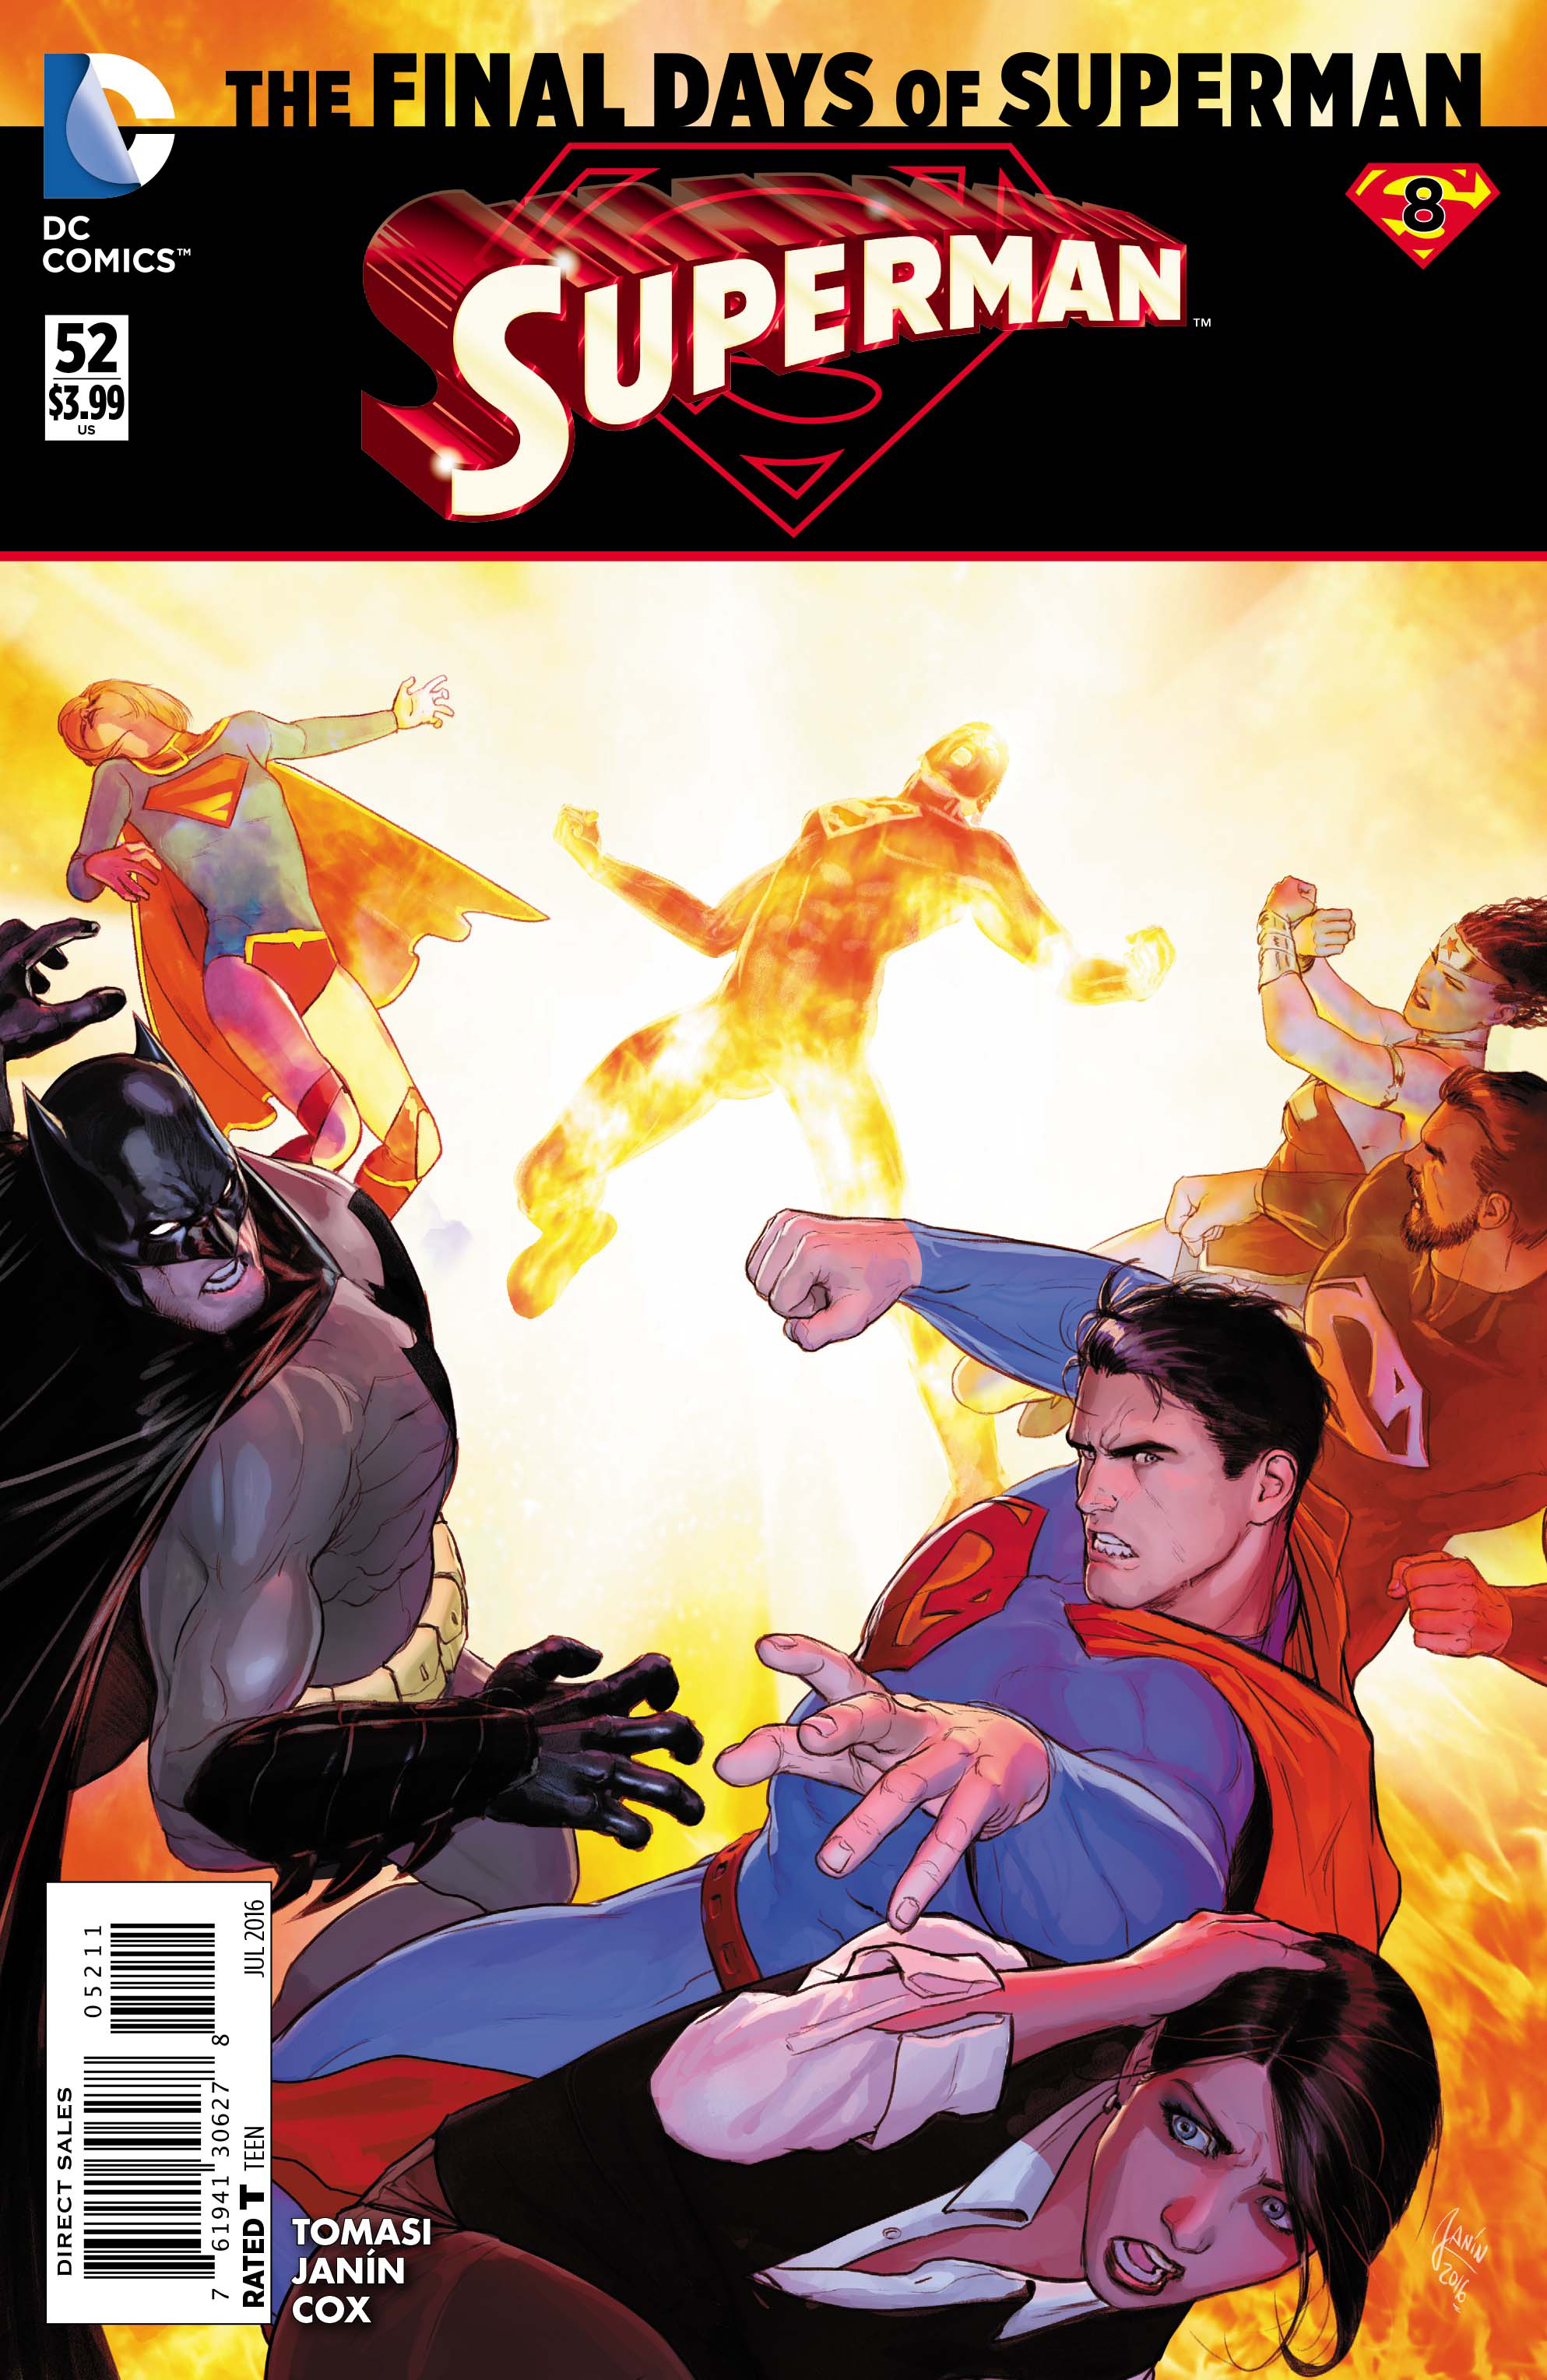 SUPERMAN #52 (FINAL DAYS)